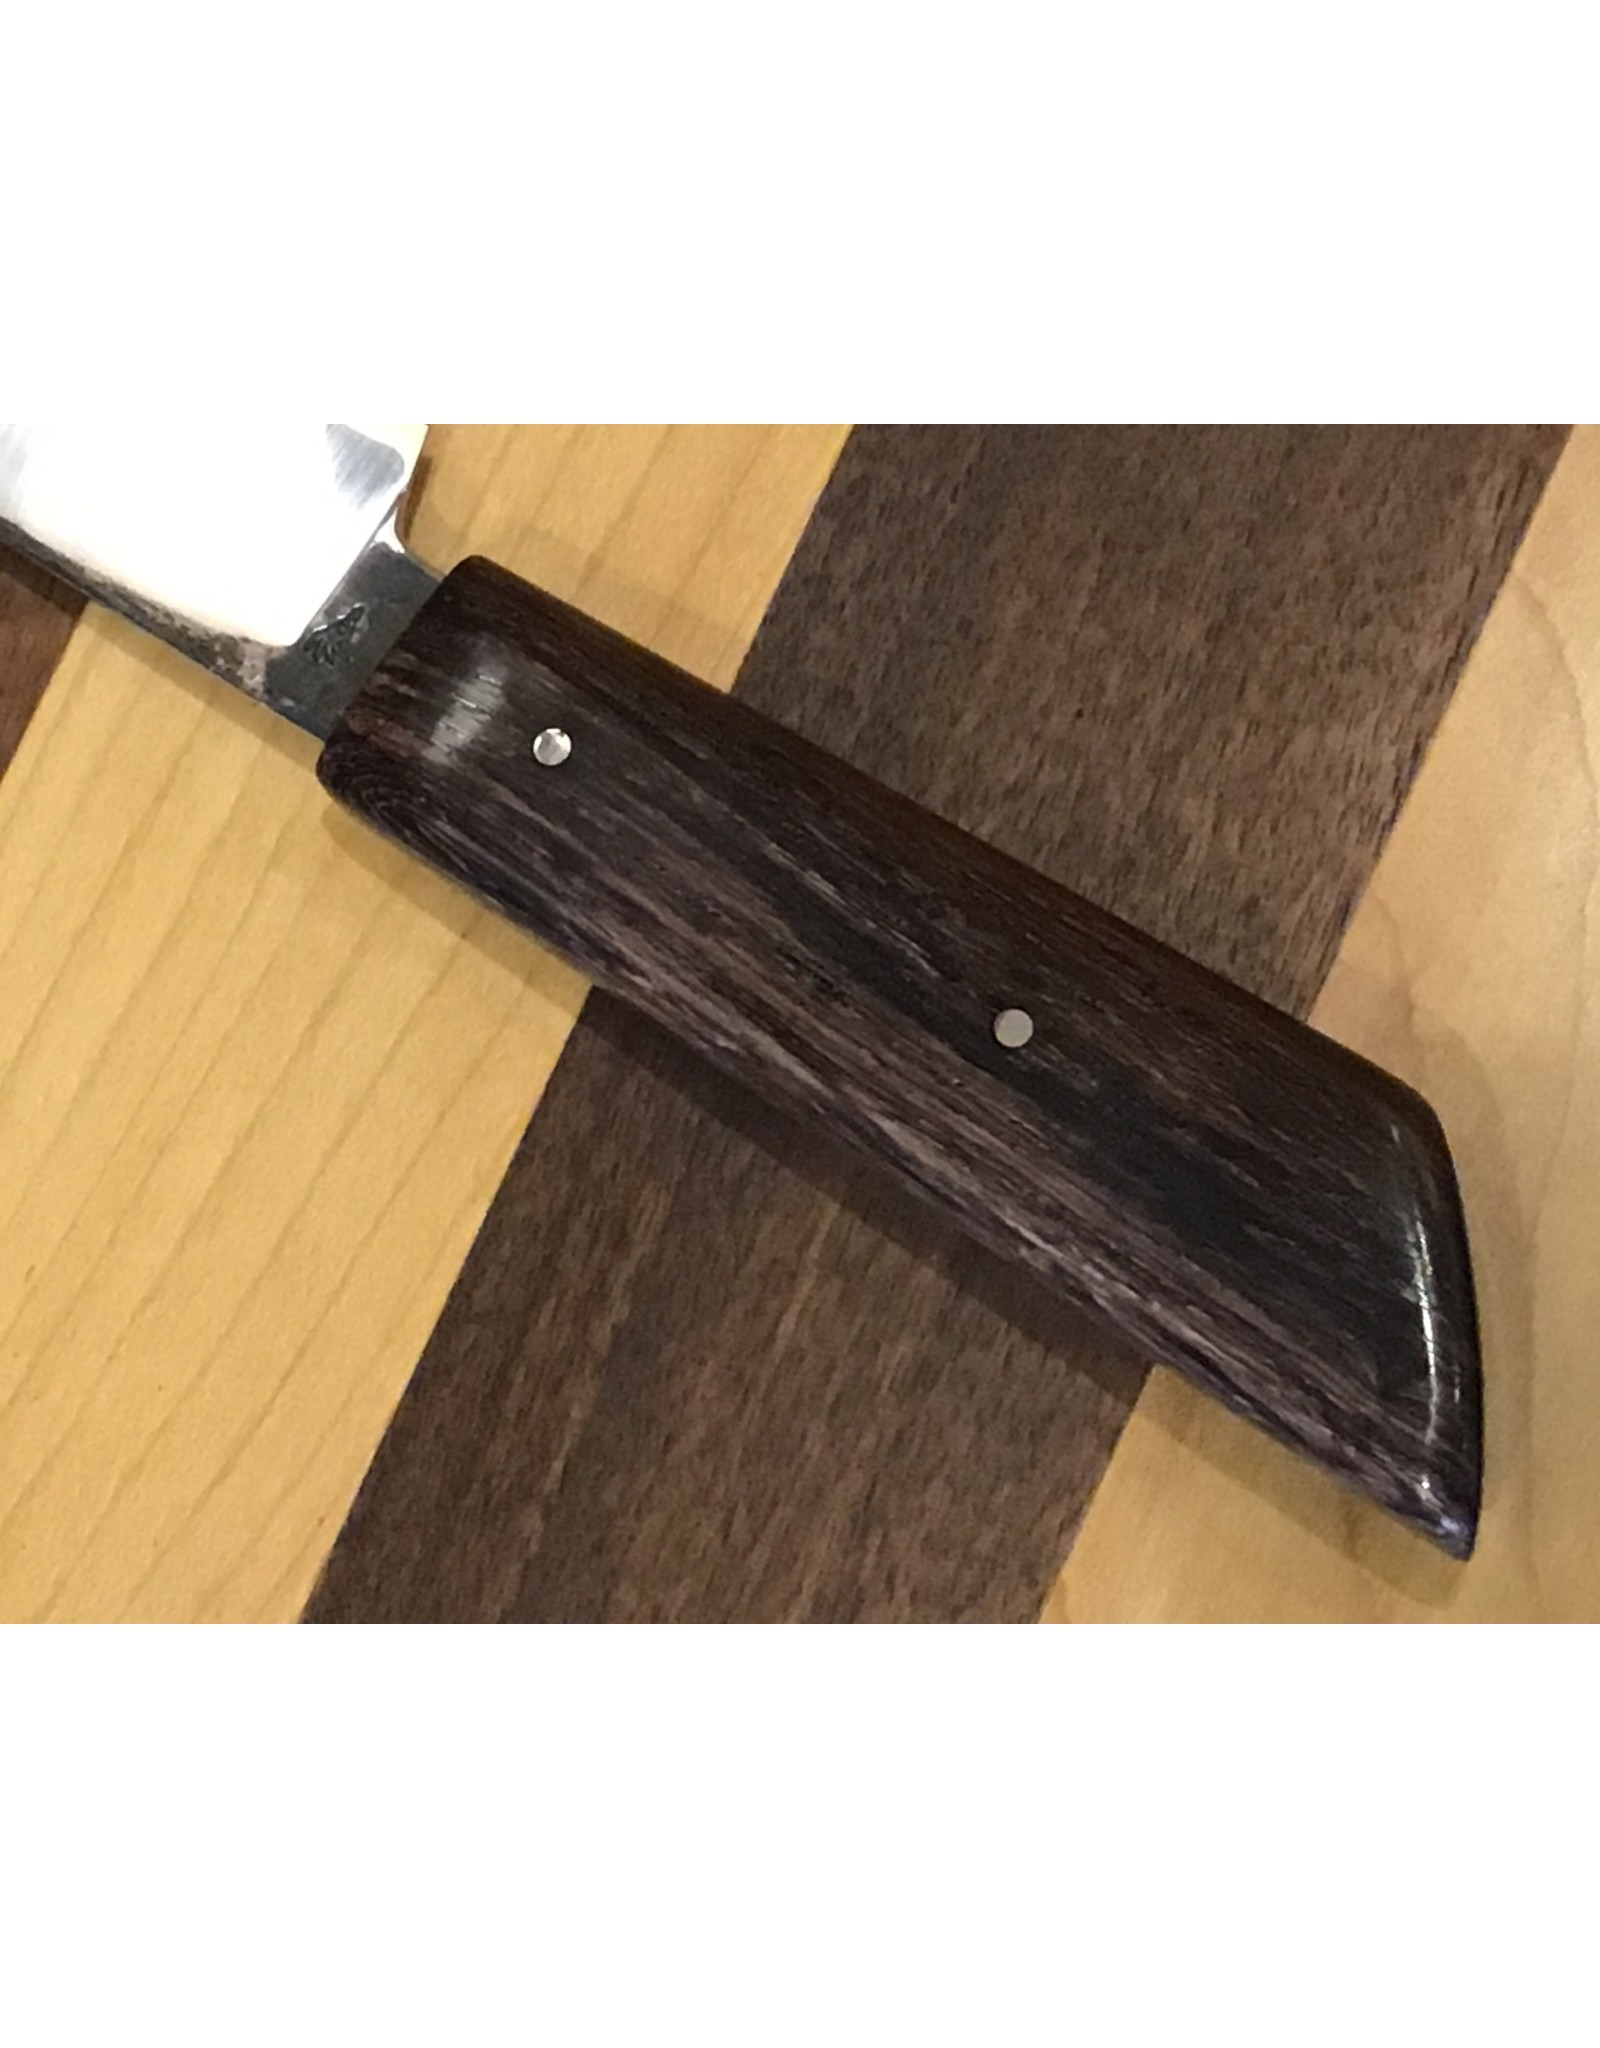 "Serenity 5 5/8"" WA Handled Honesuki"